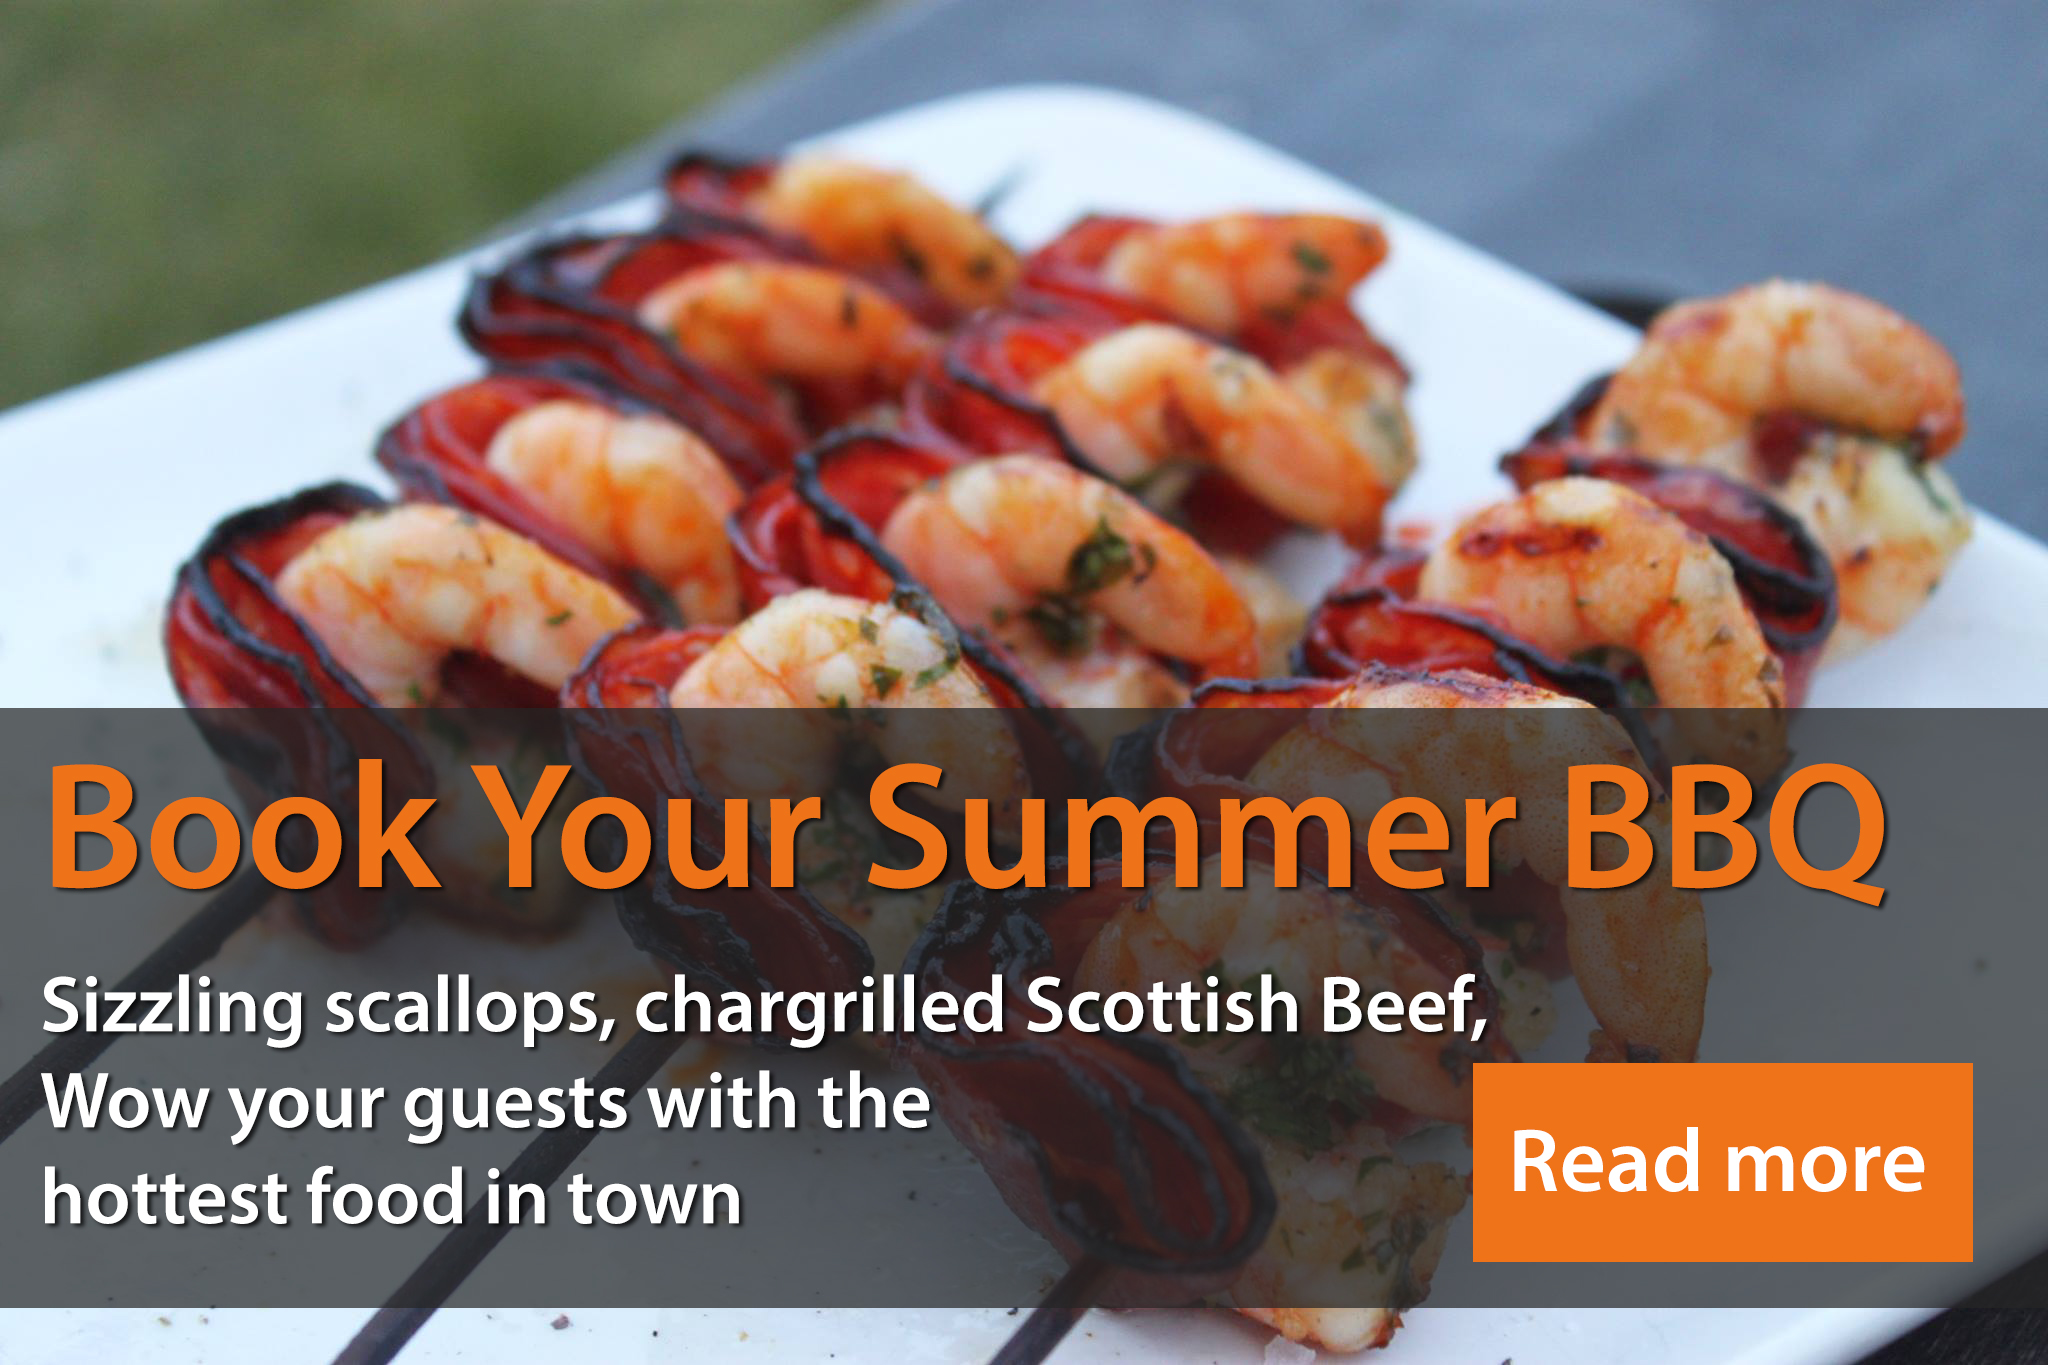 Book your summer BBQ